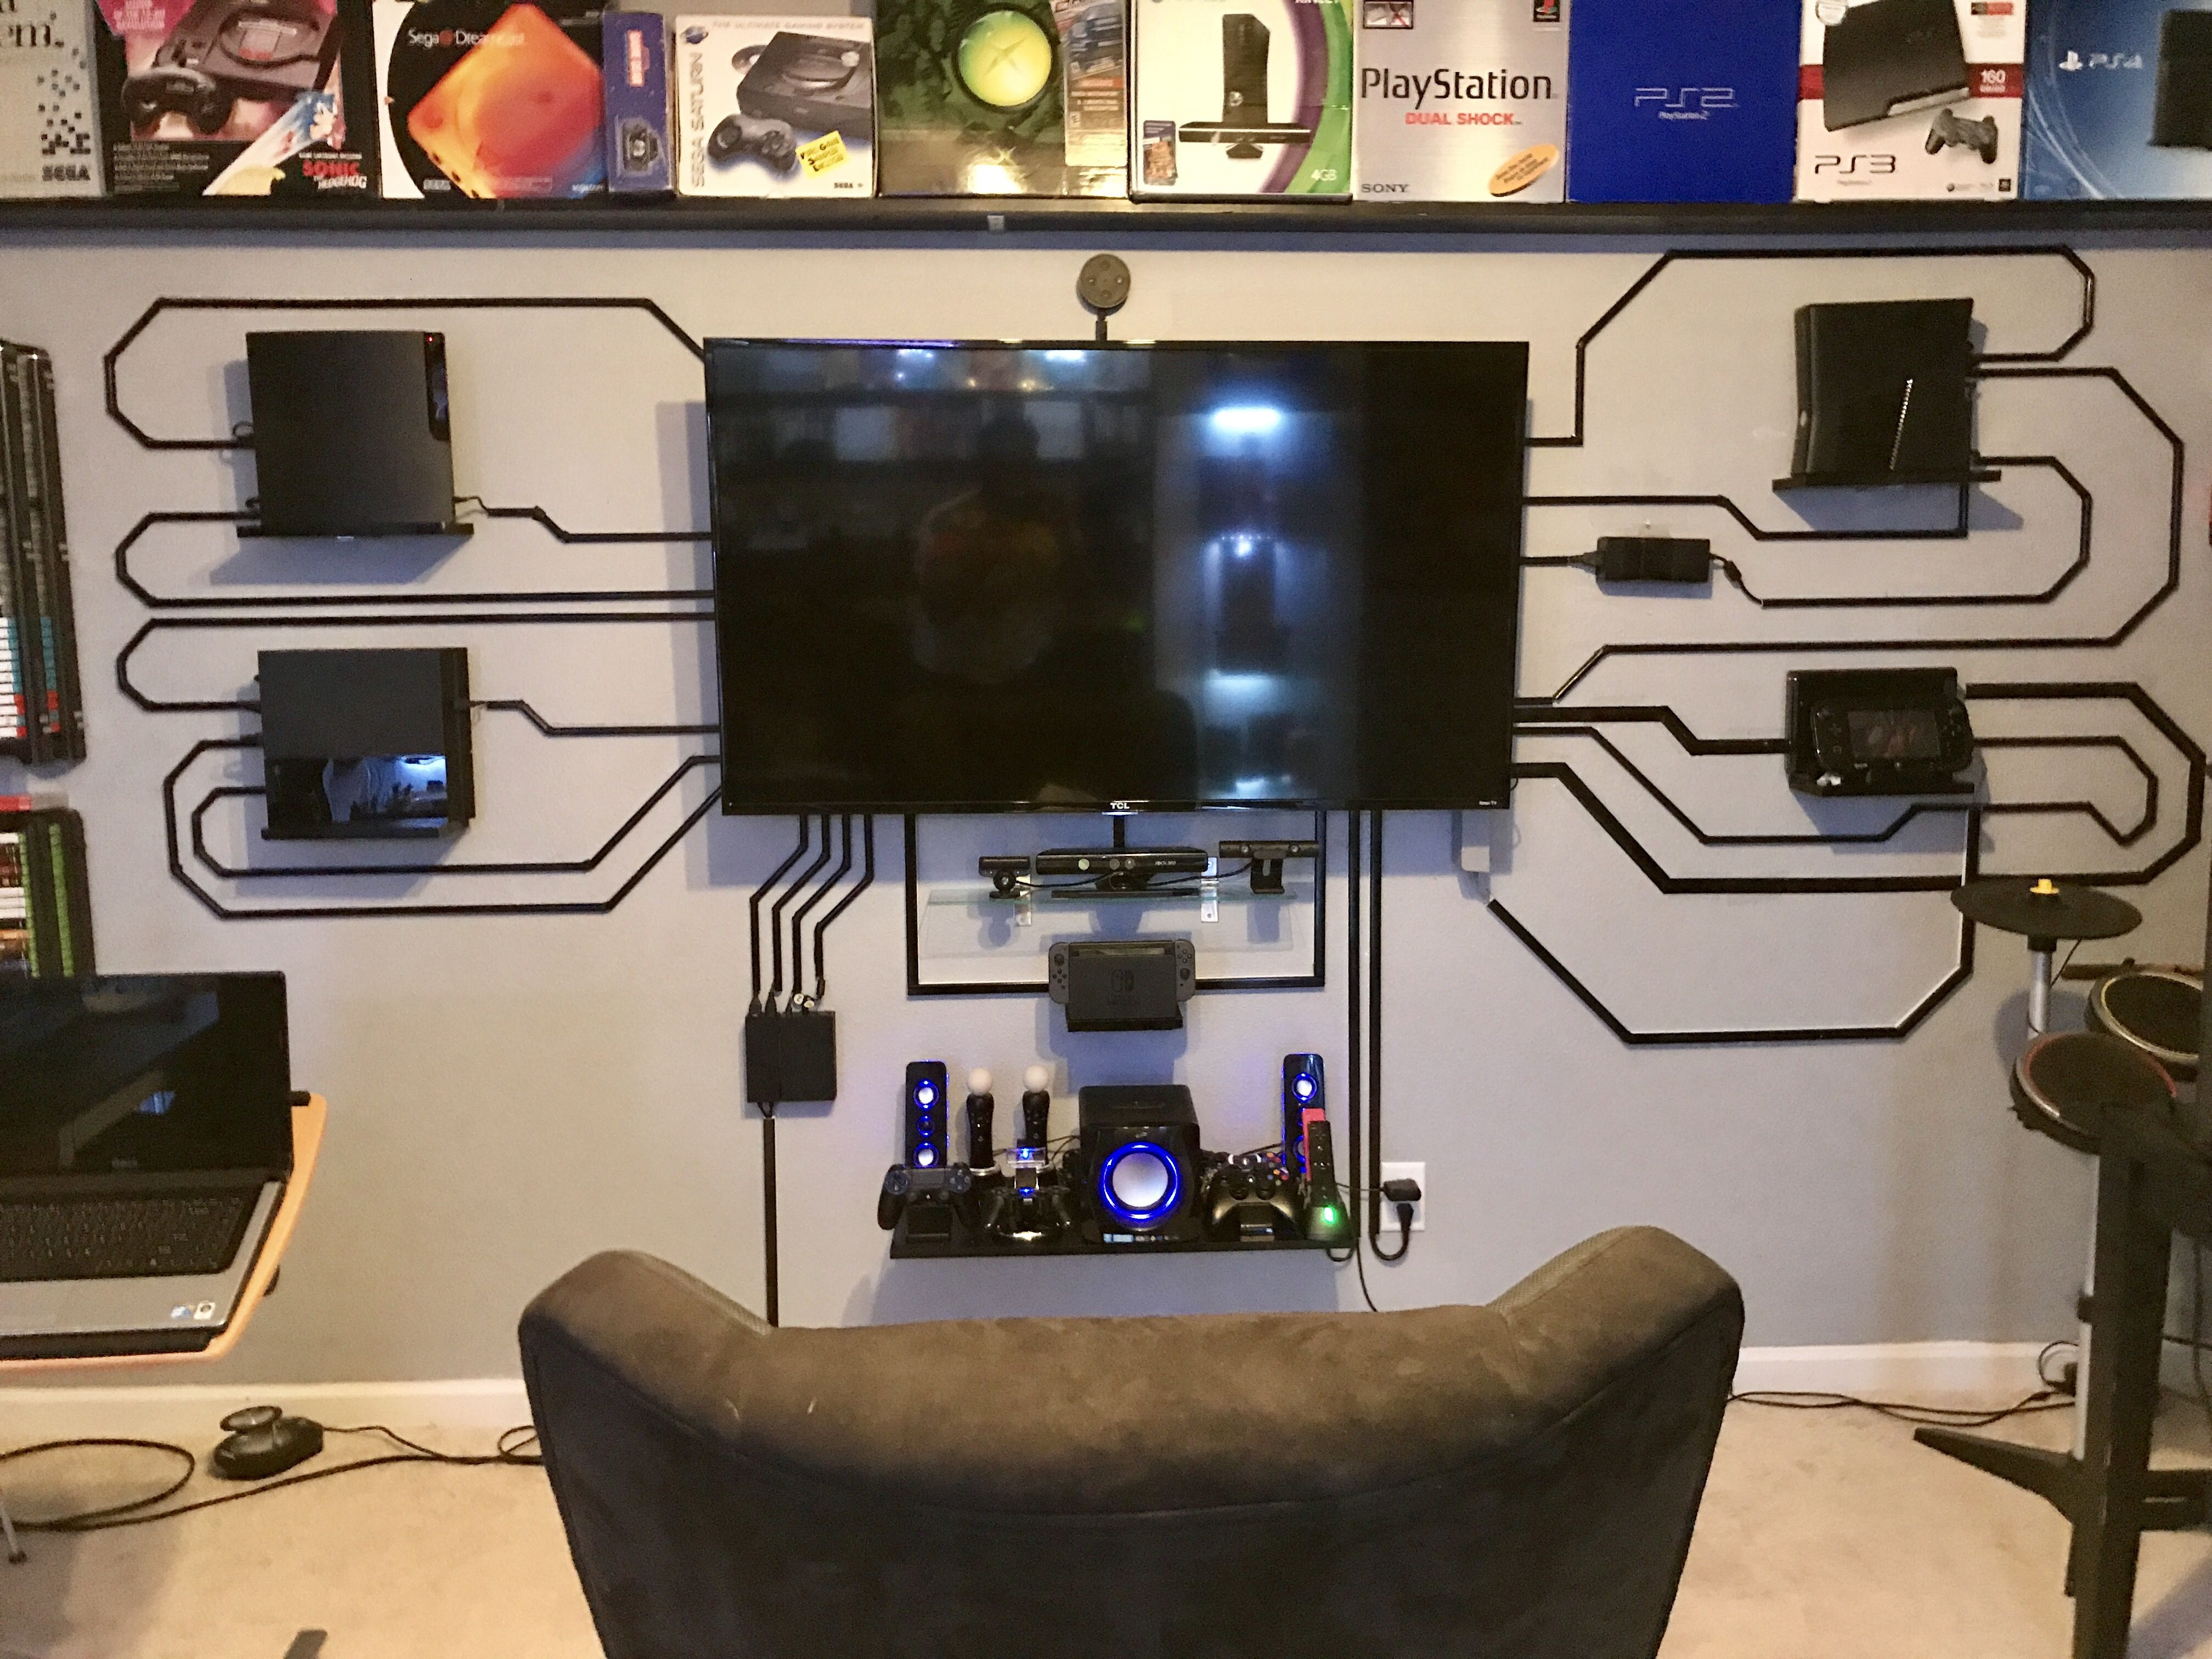 Build a room addition in any number of ways to your existing structure. Pin by Lee Stewart on Video games   Game room design ...